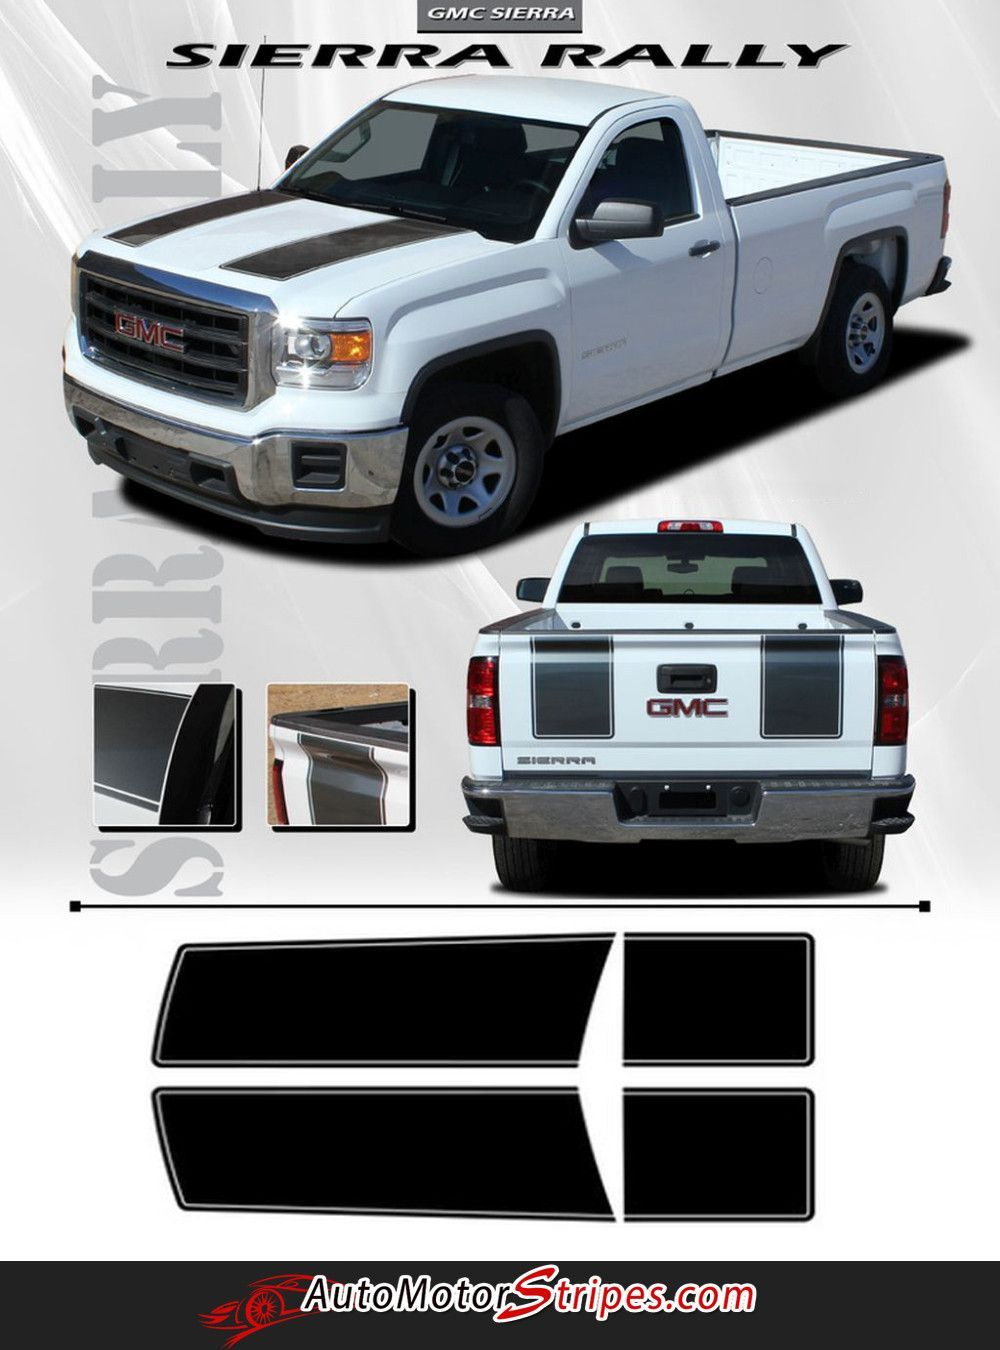 hight resolution of 2014 2016 gmc sierra rally oe factory style edition truck hood tailgate racing vinyl graphics stripes kit